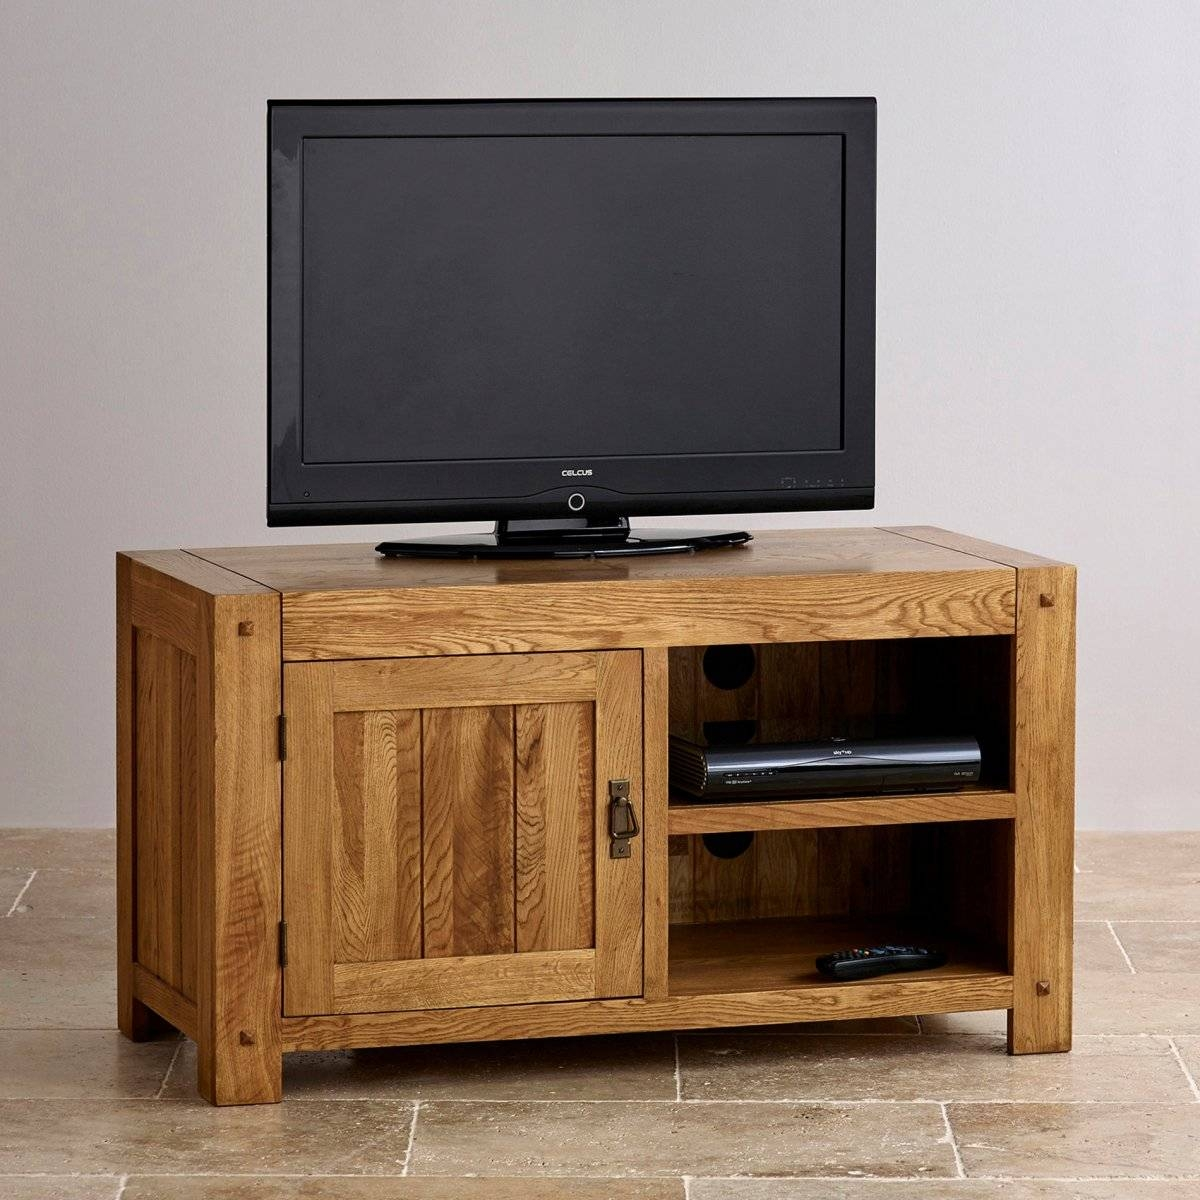 Quercus Tv Cabinet In Rustic Solid Oak | Oak Furniture Land With Small Oak Tv Cabinets (View 12 of 15)